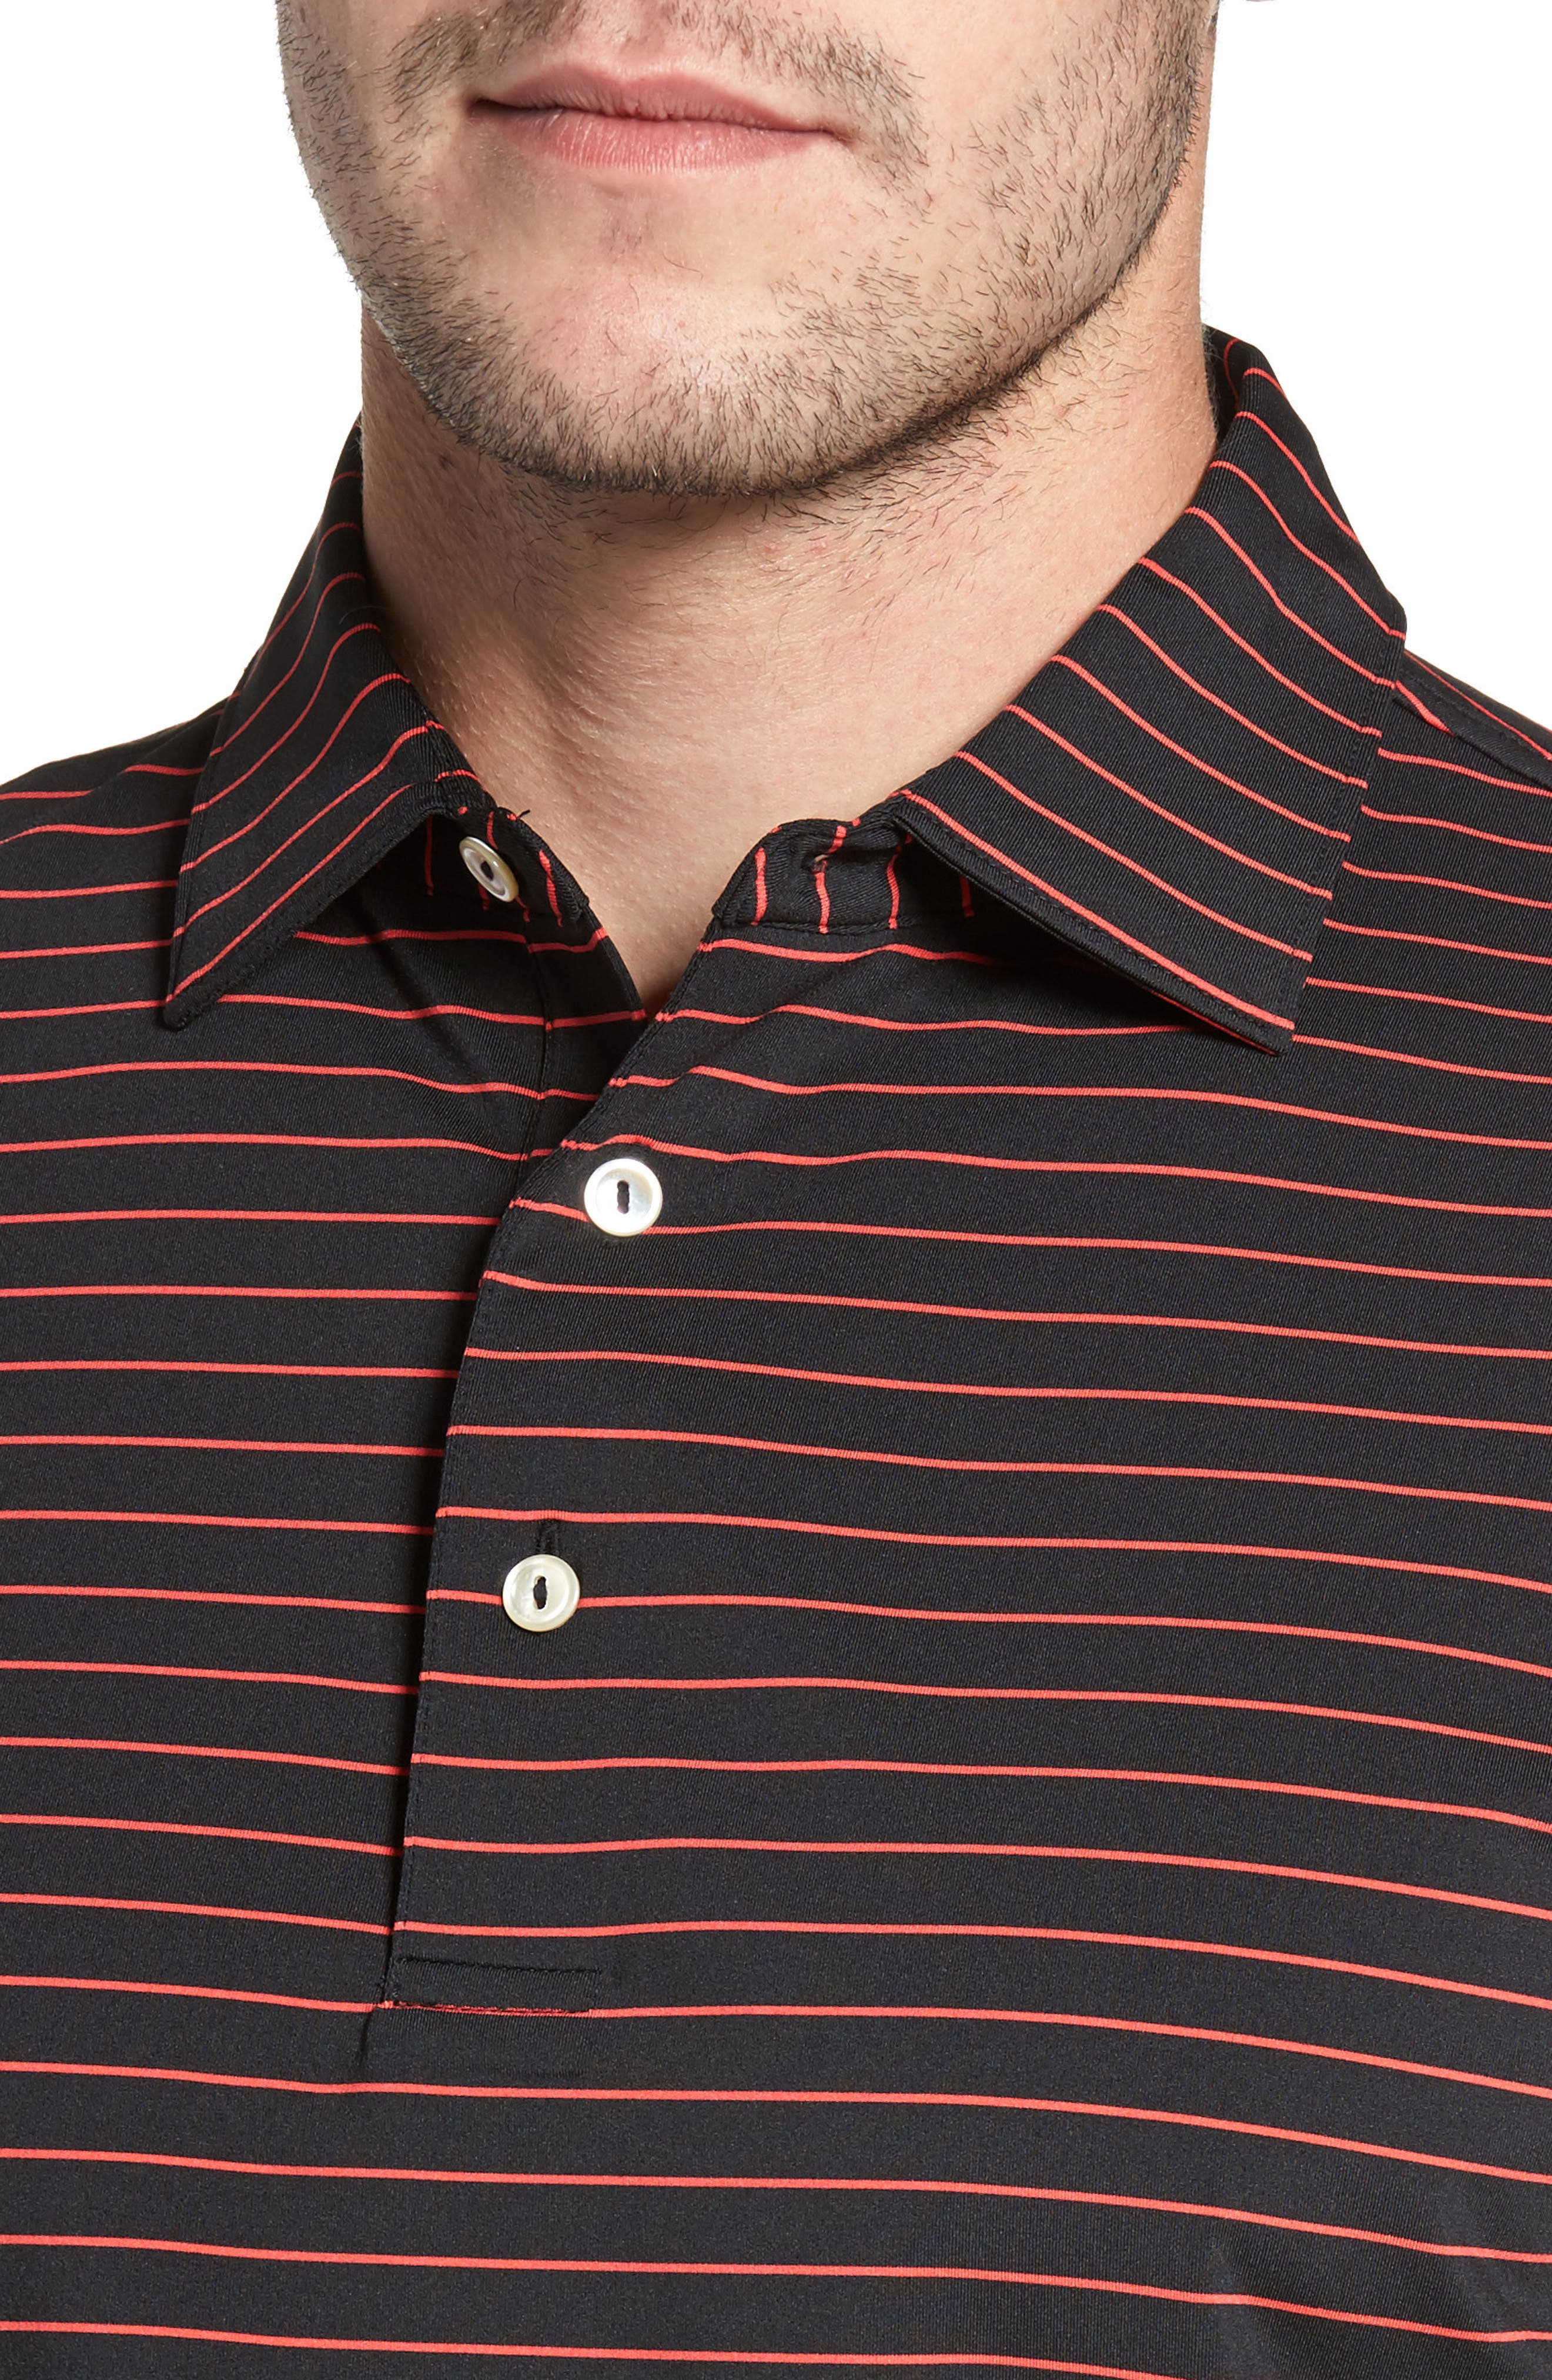 Halifax Pinstripe Stretch Jersey Polo,                             Alternate thumbnail 4, color,                             001